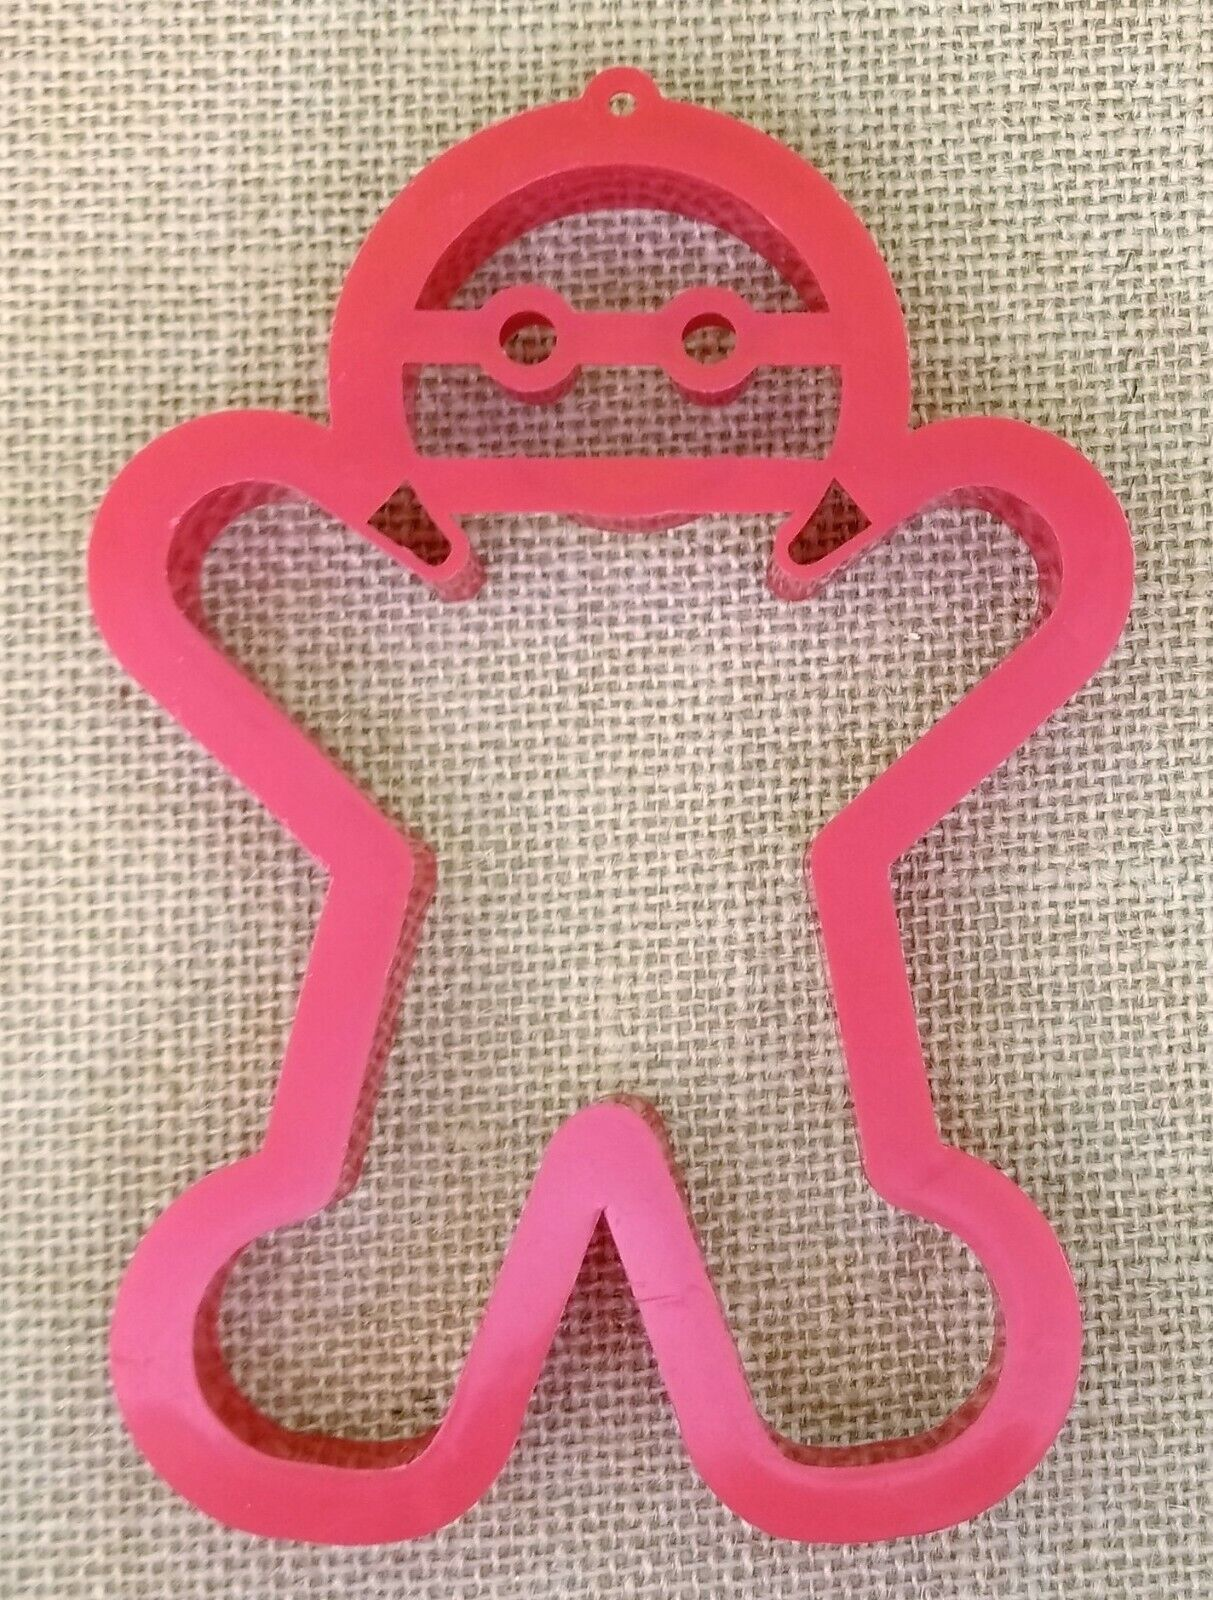 Gingerbread Man Cookie Cutter Large 5.5 In. Red Plastic  - $6.98